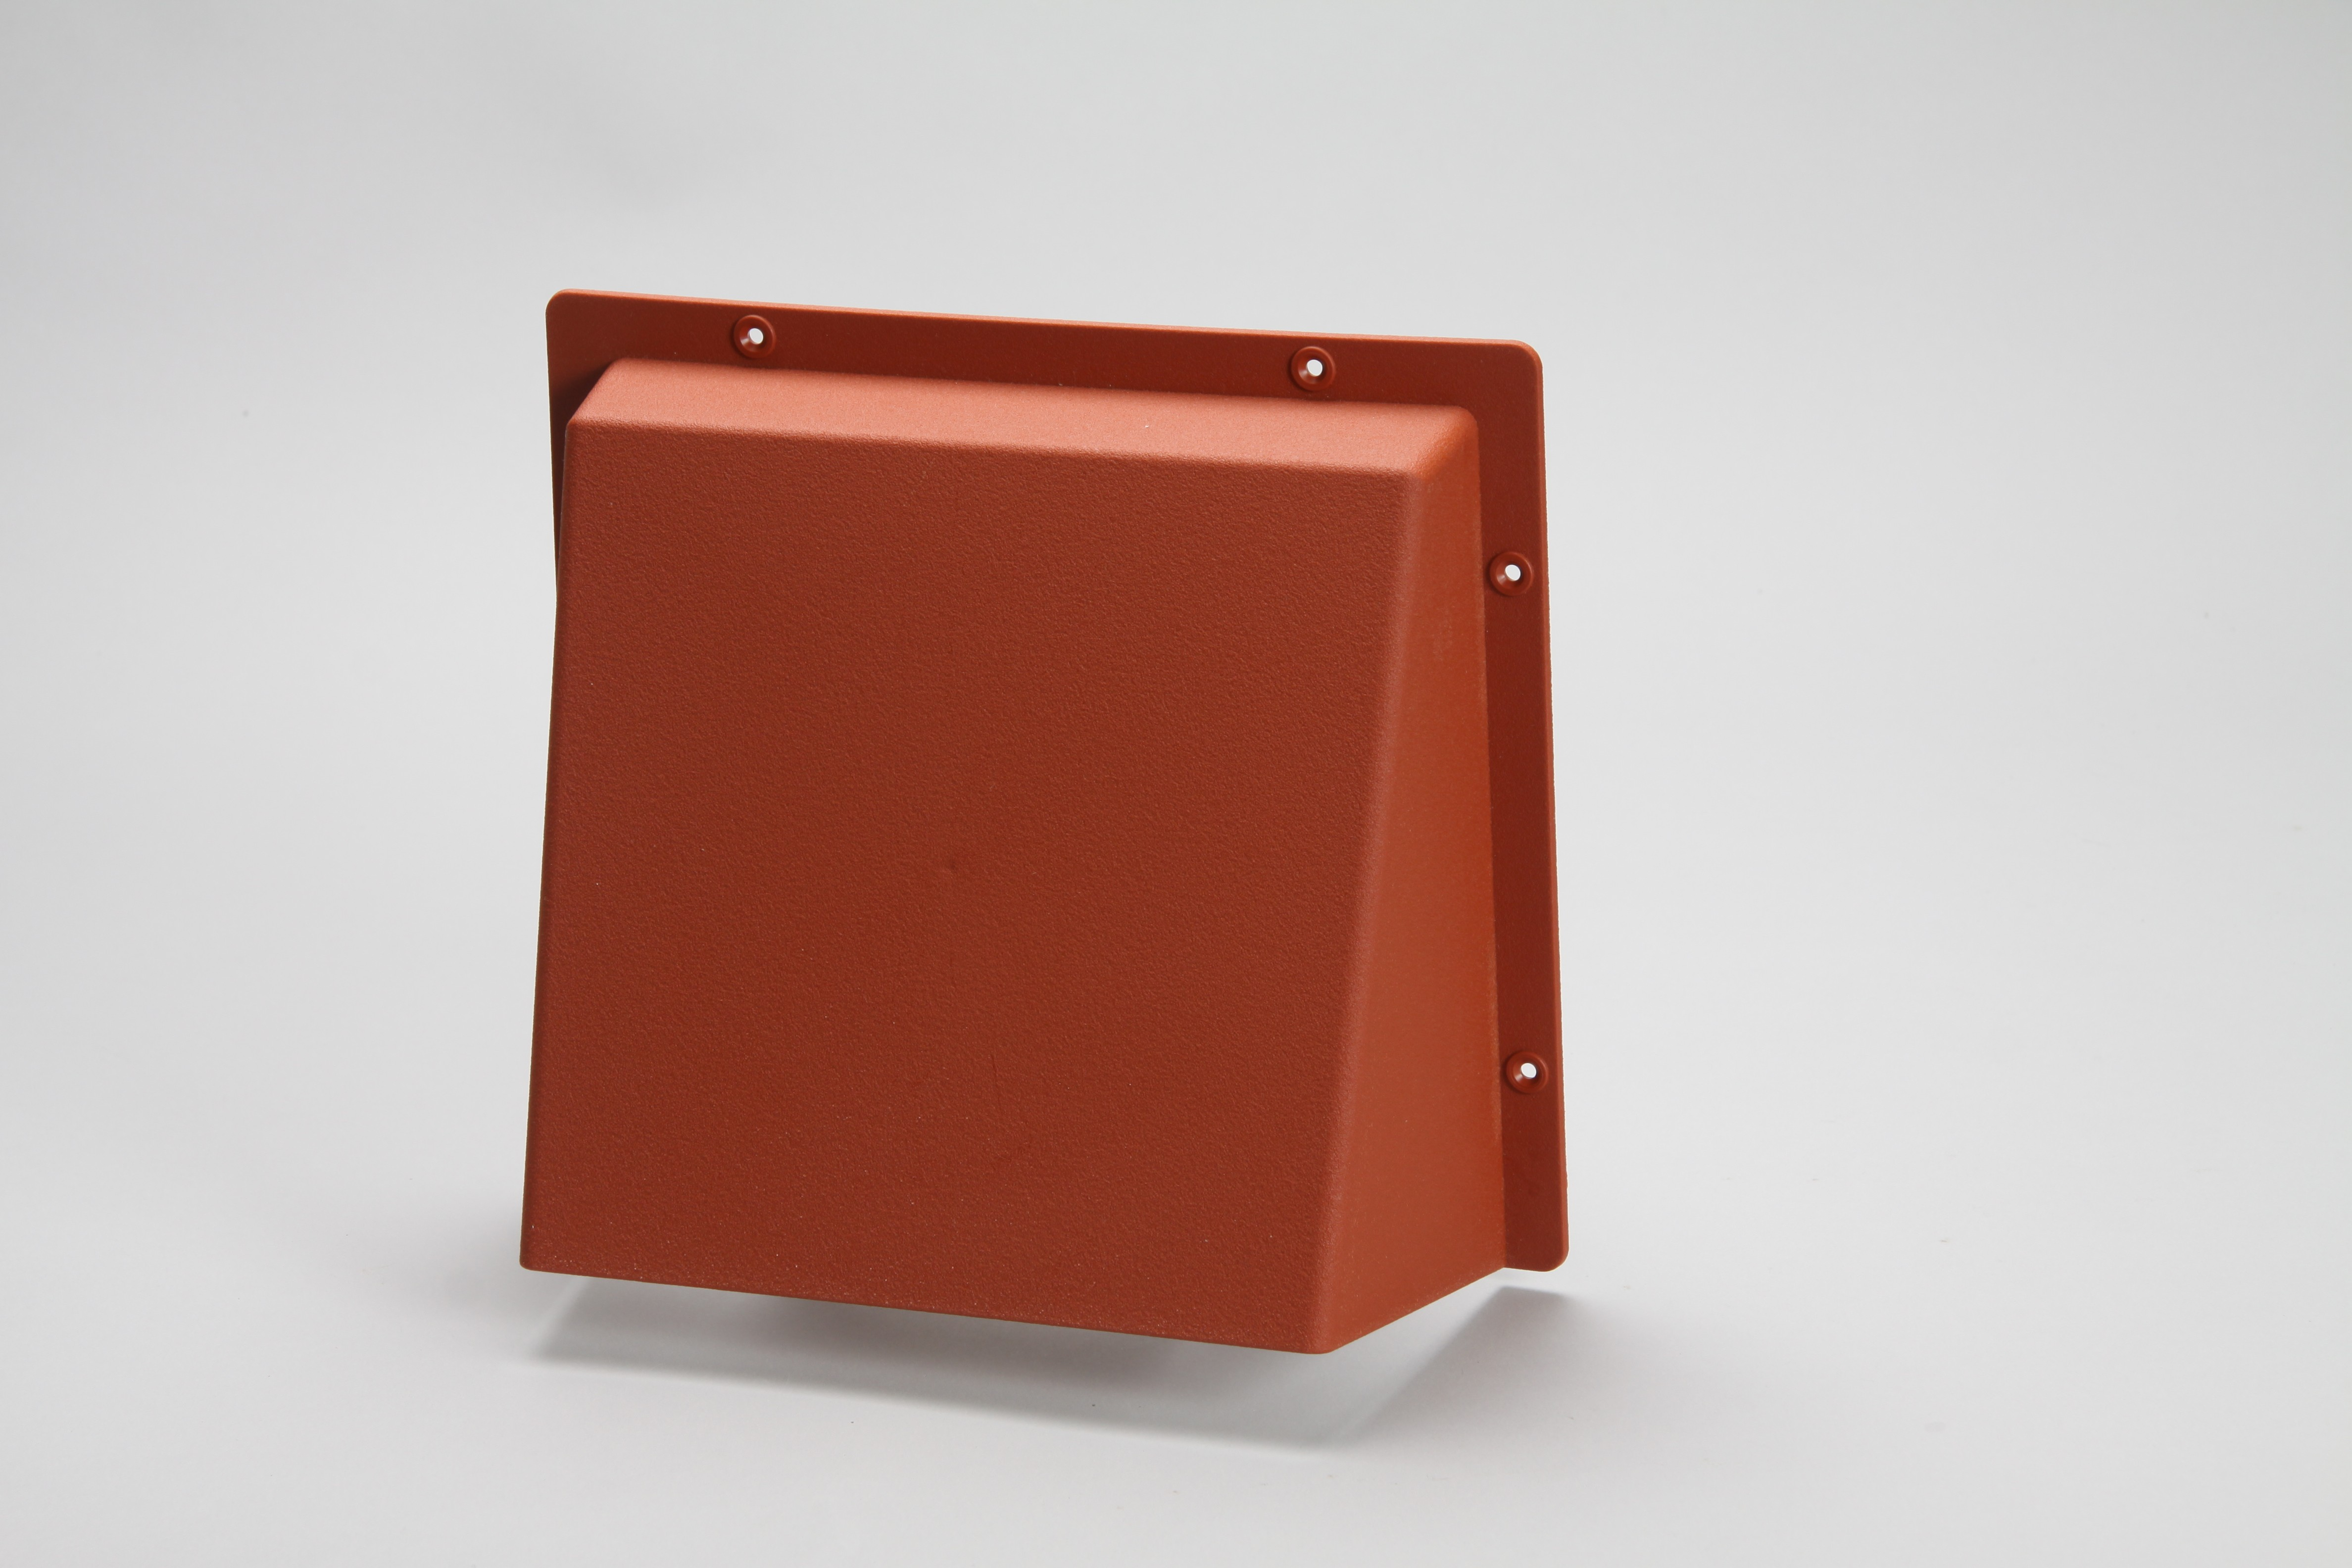 Vent grille cowl cover terracotta